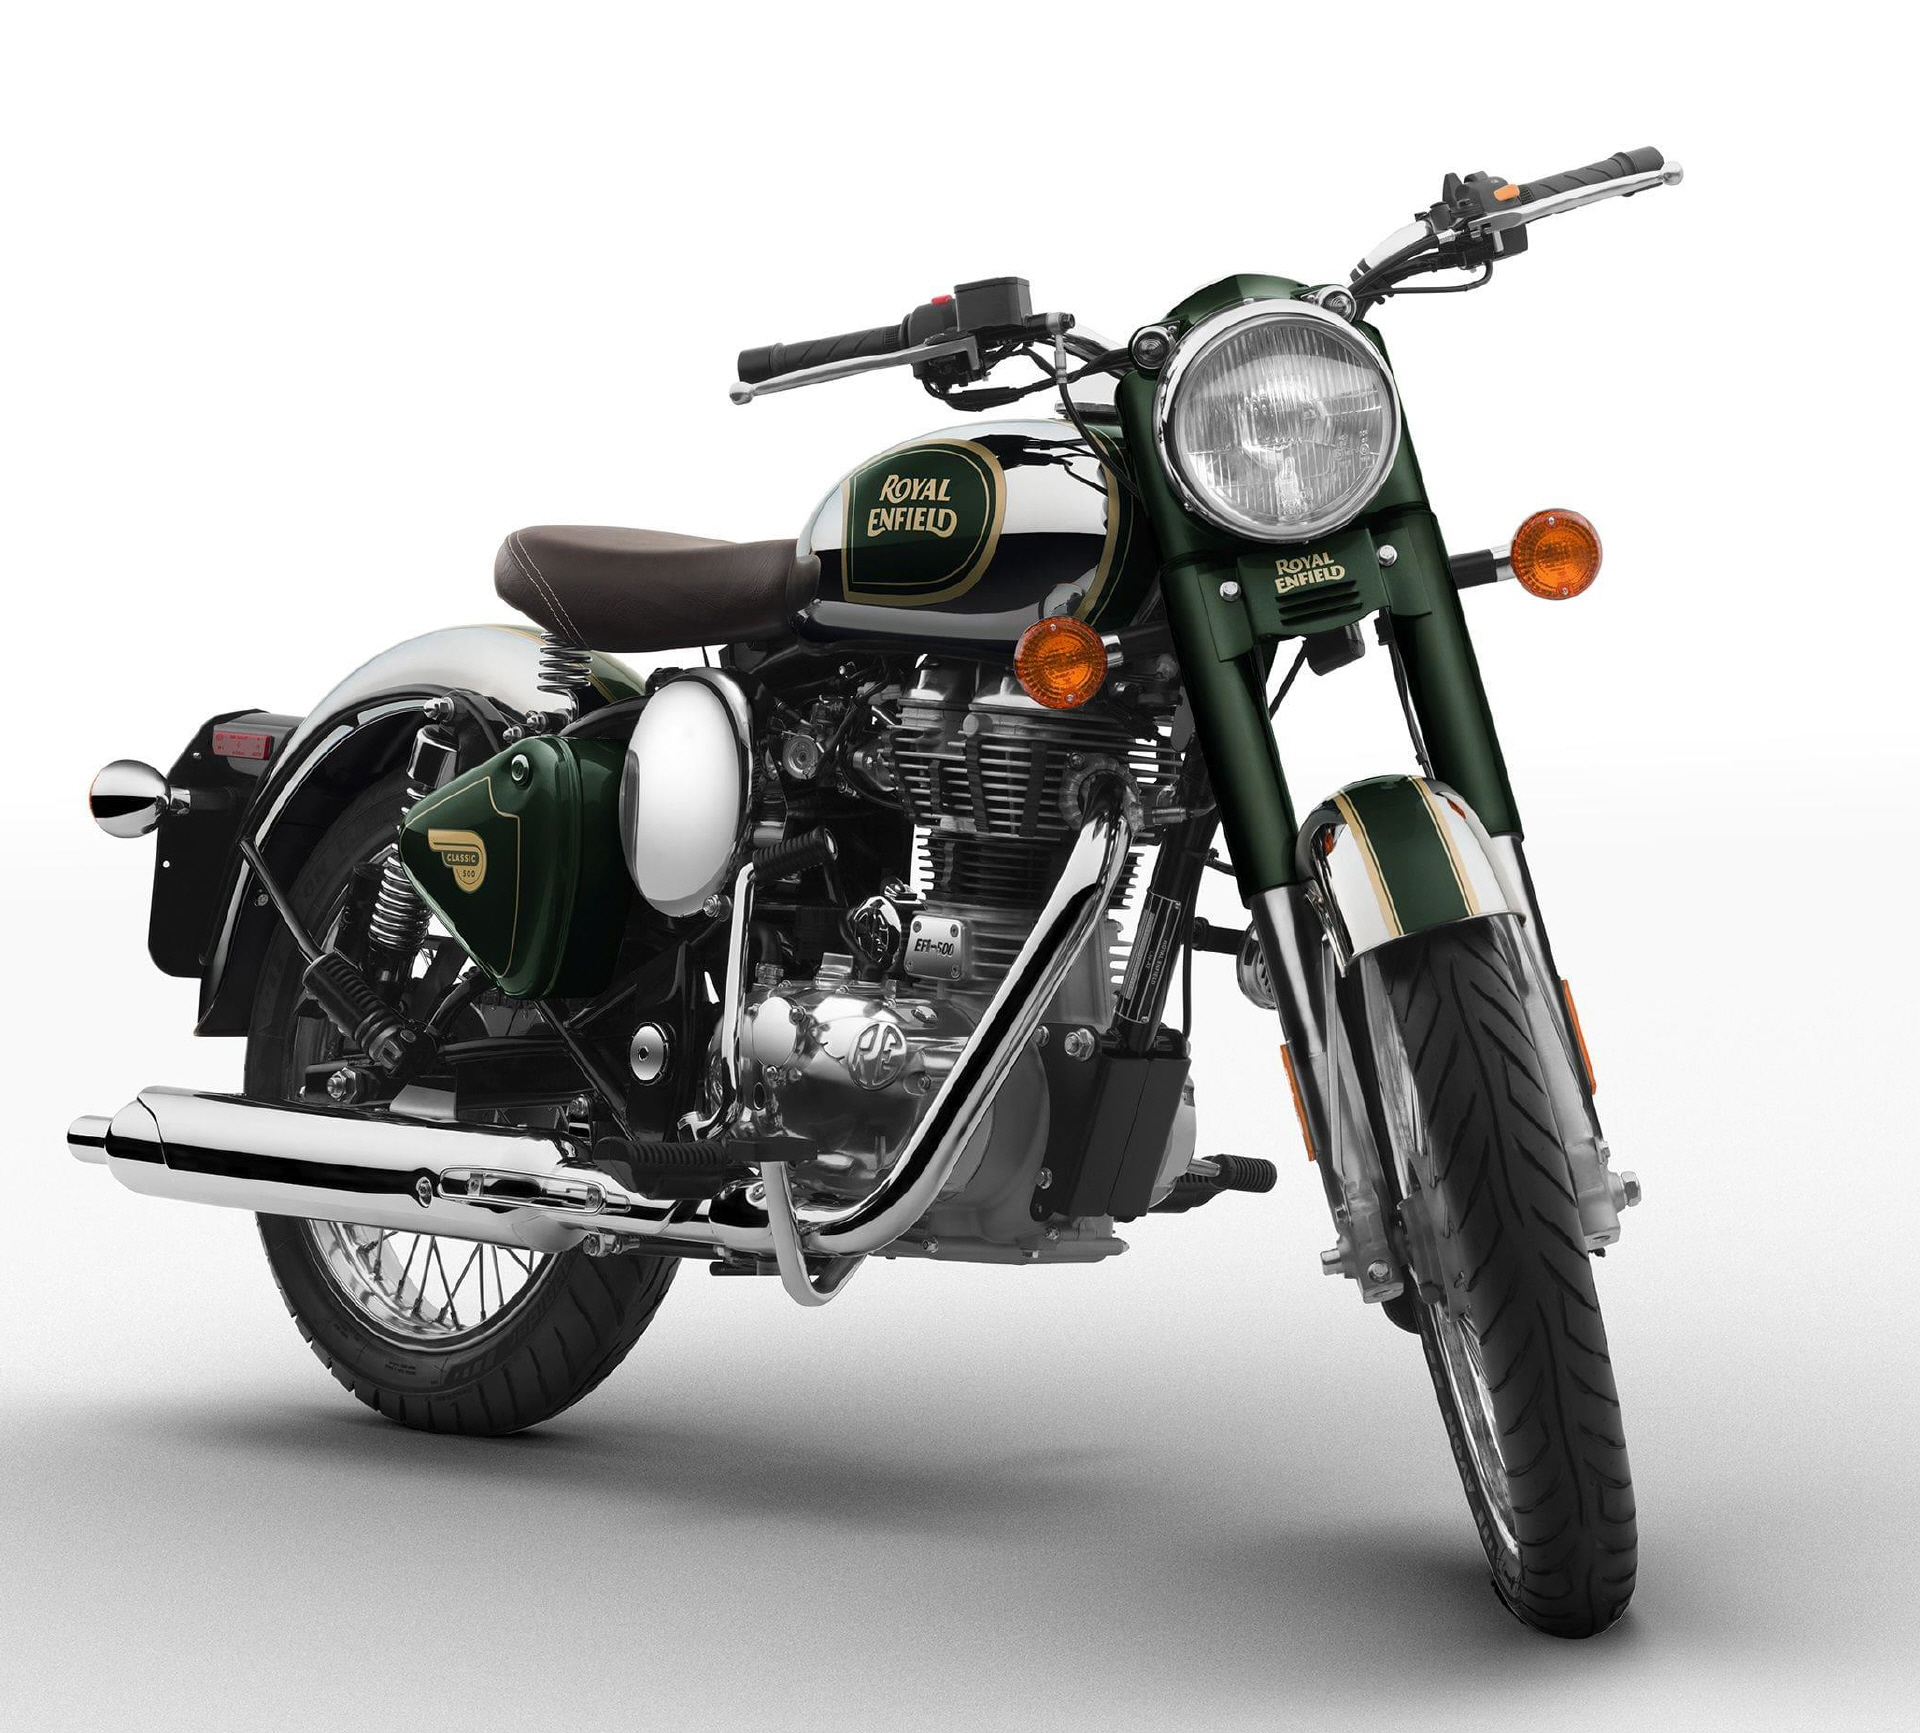 royalenfield_classic_chrome_green_02jpg